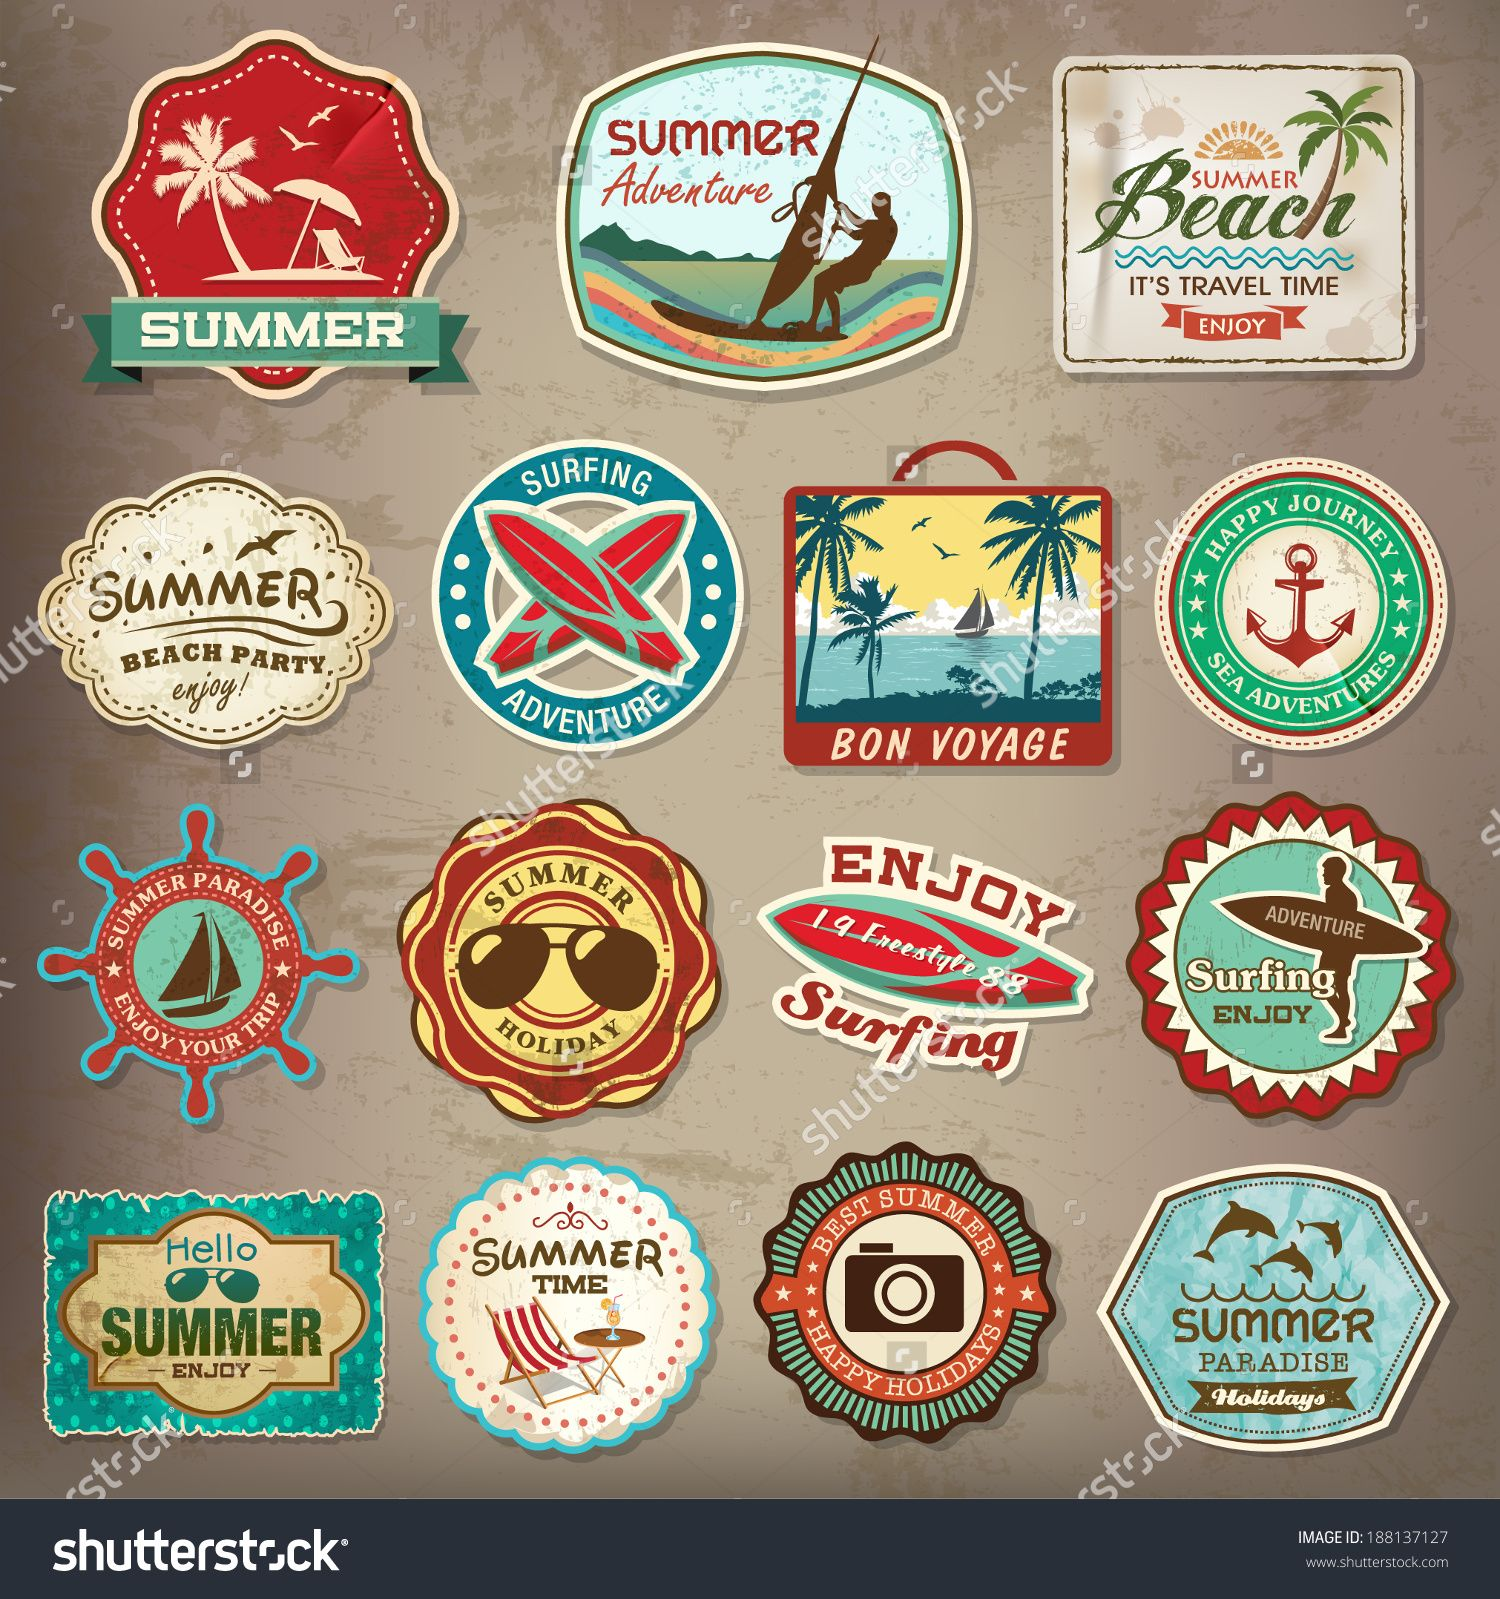 Collection of vintage retro grunge summer labels labels badges and icons stock vector illustration 188137127 shutterstock